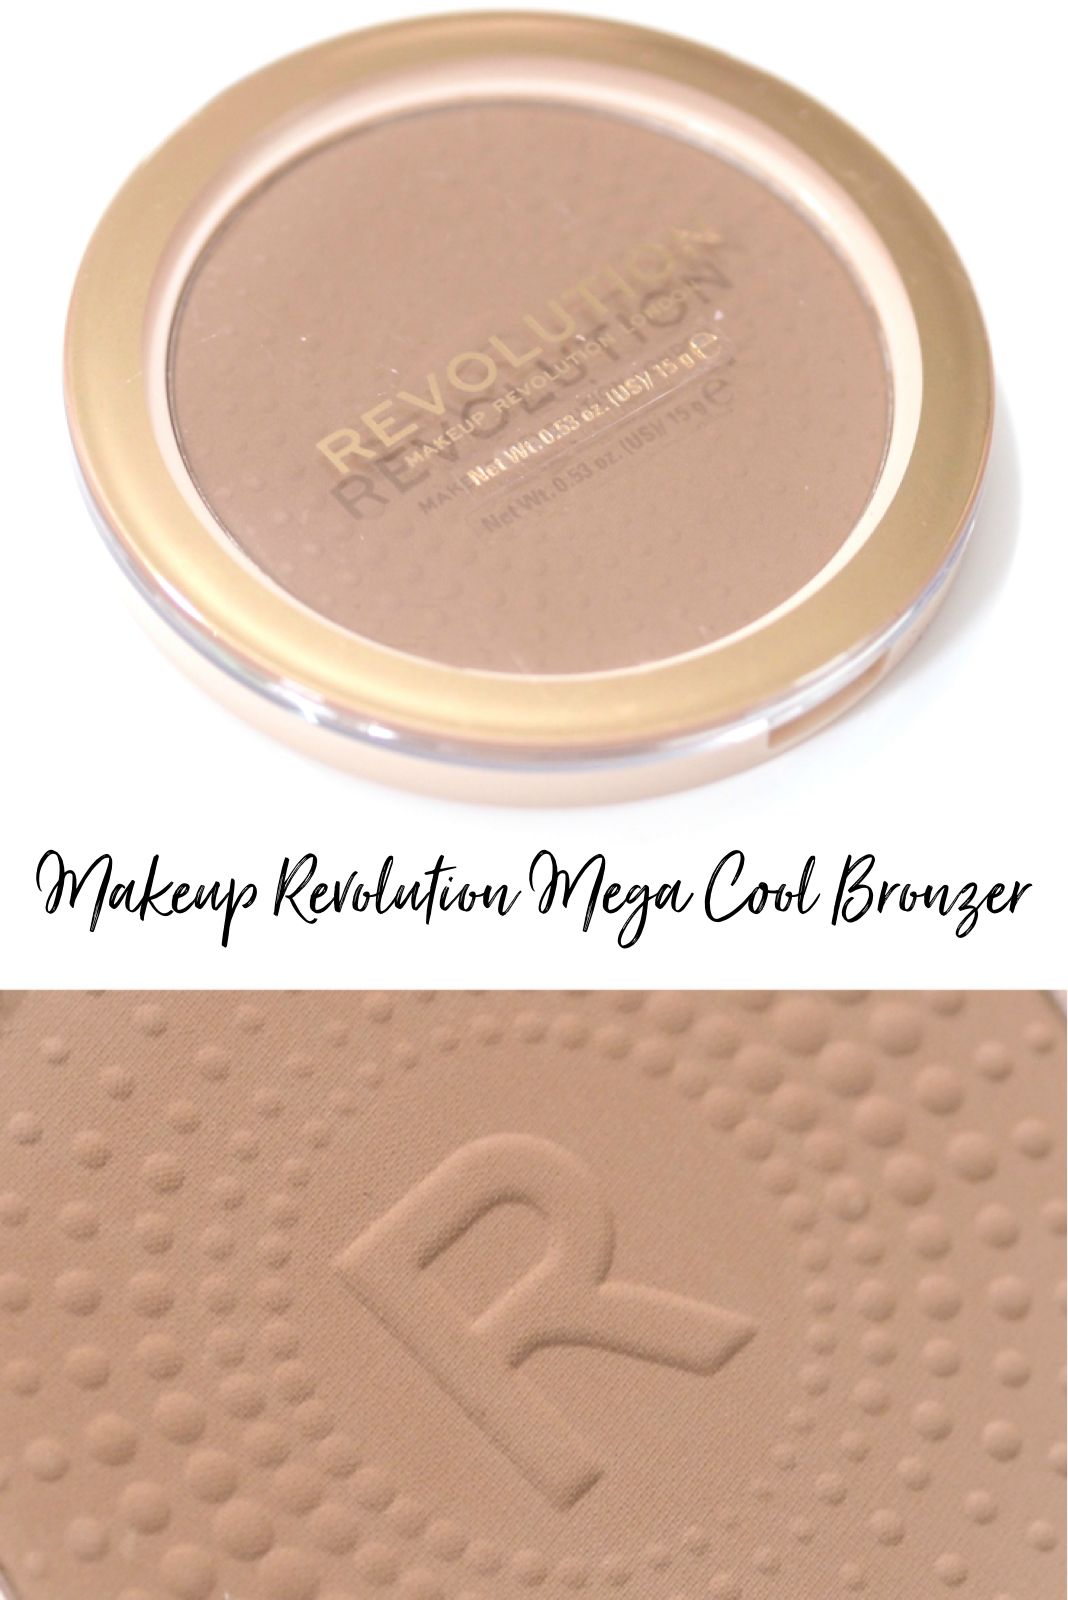 Revolution Mega Bronzer Review and Swatches in shade Cool